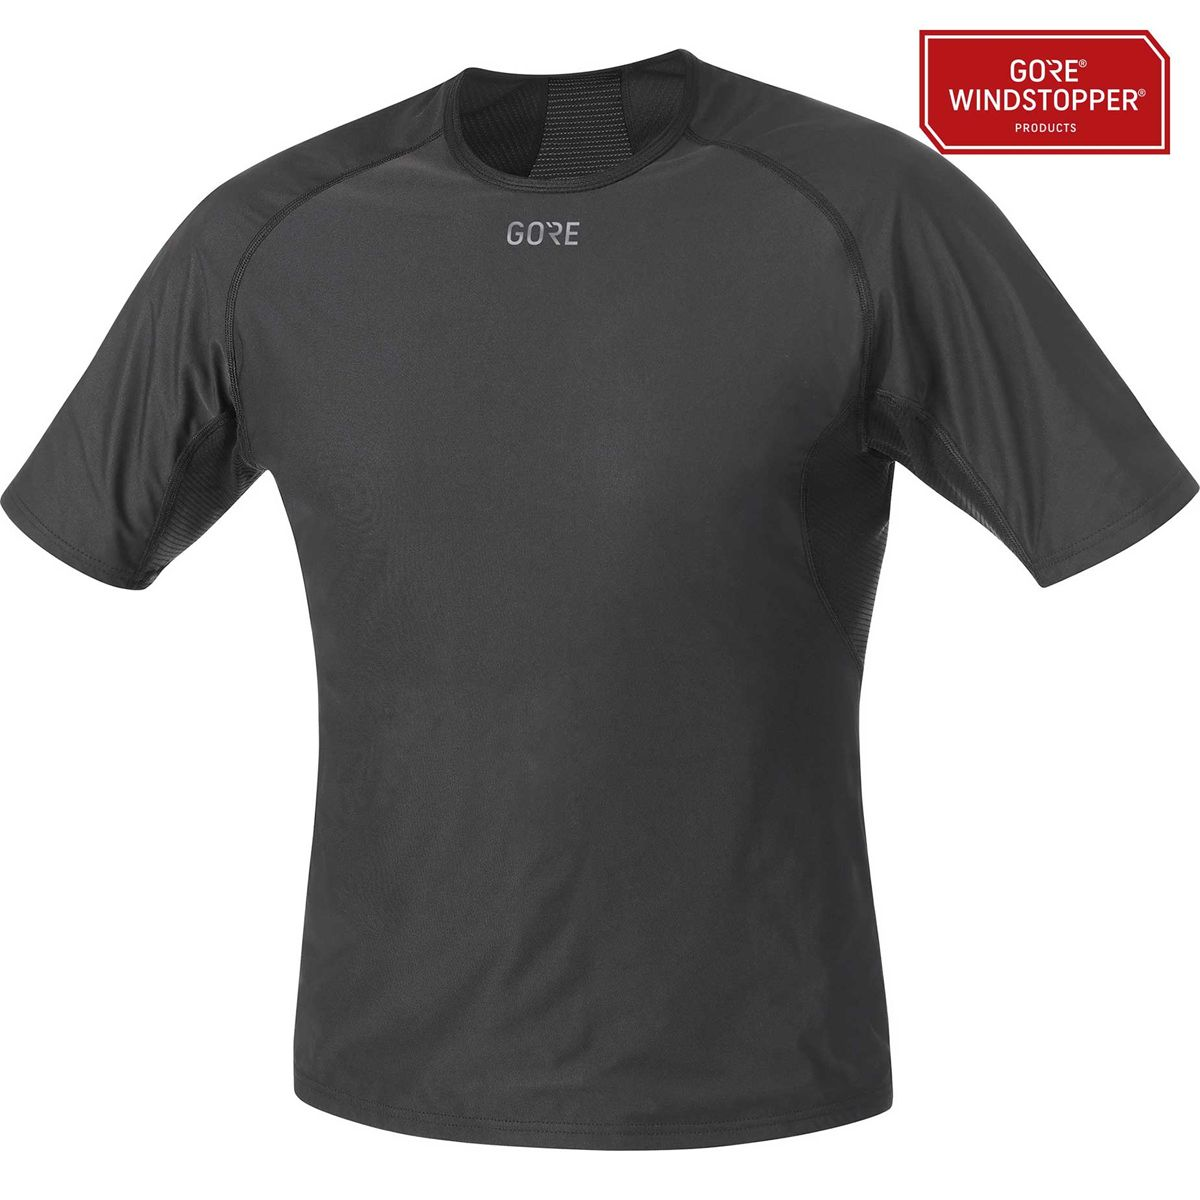 M GORE WINDSTOPPER BASE LAYER SHIRT